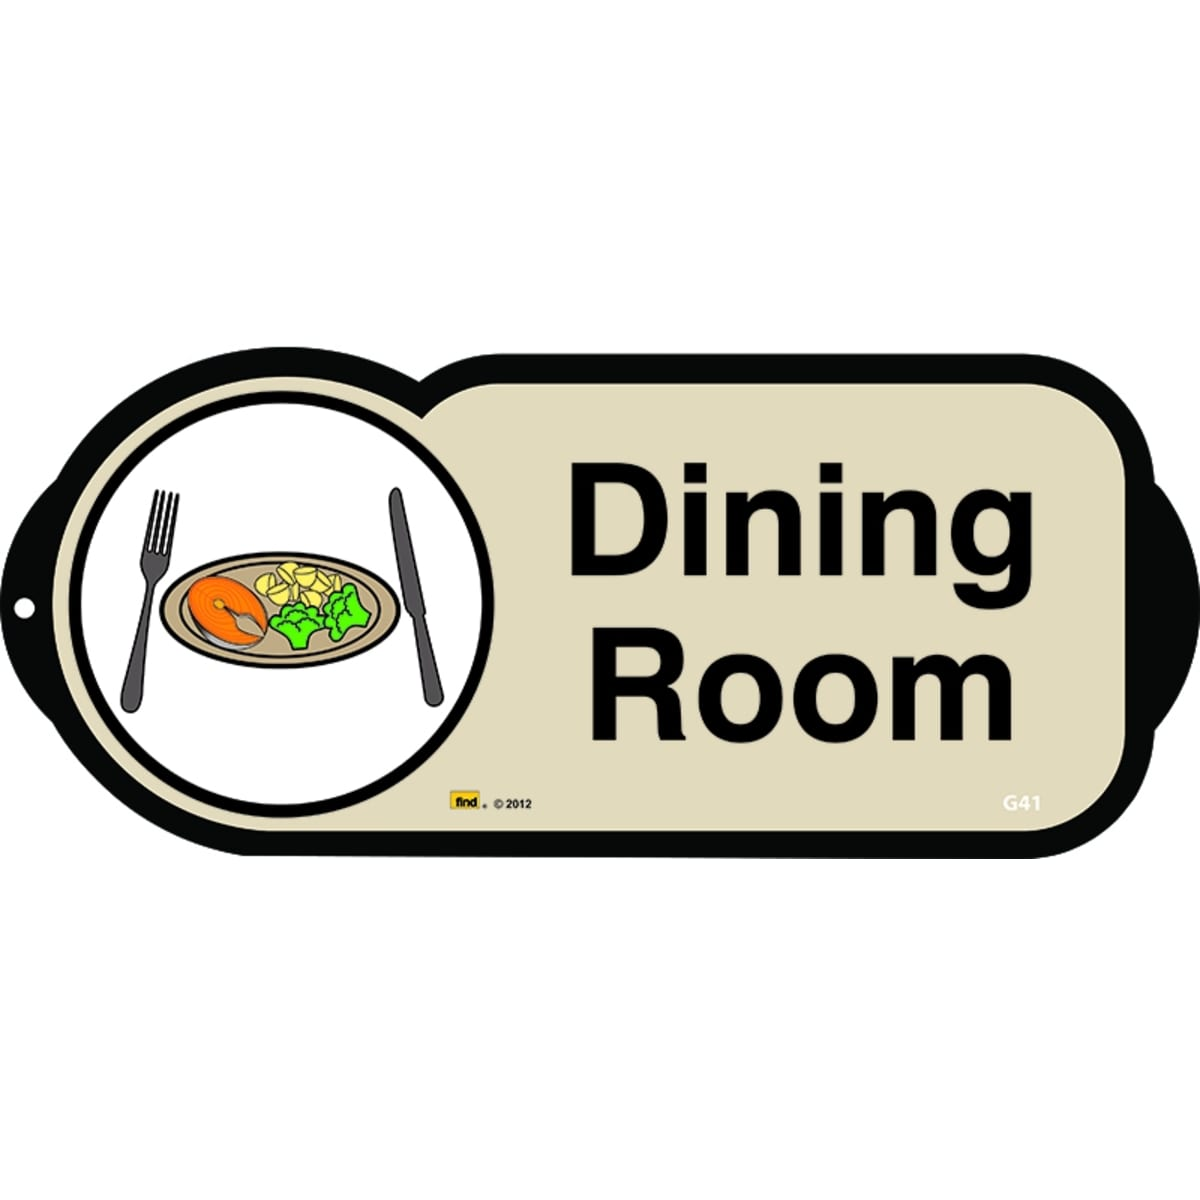 Dining Room sign for autism and learning disabilities - signage